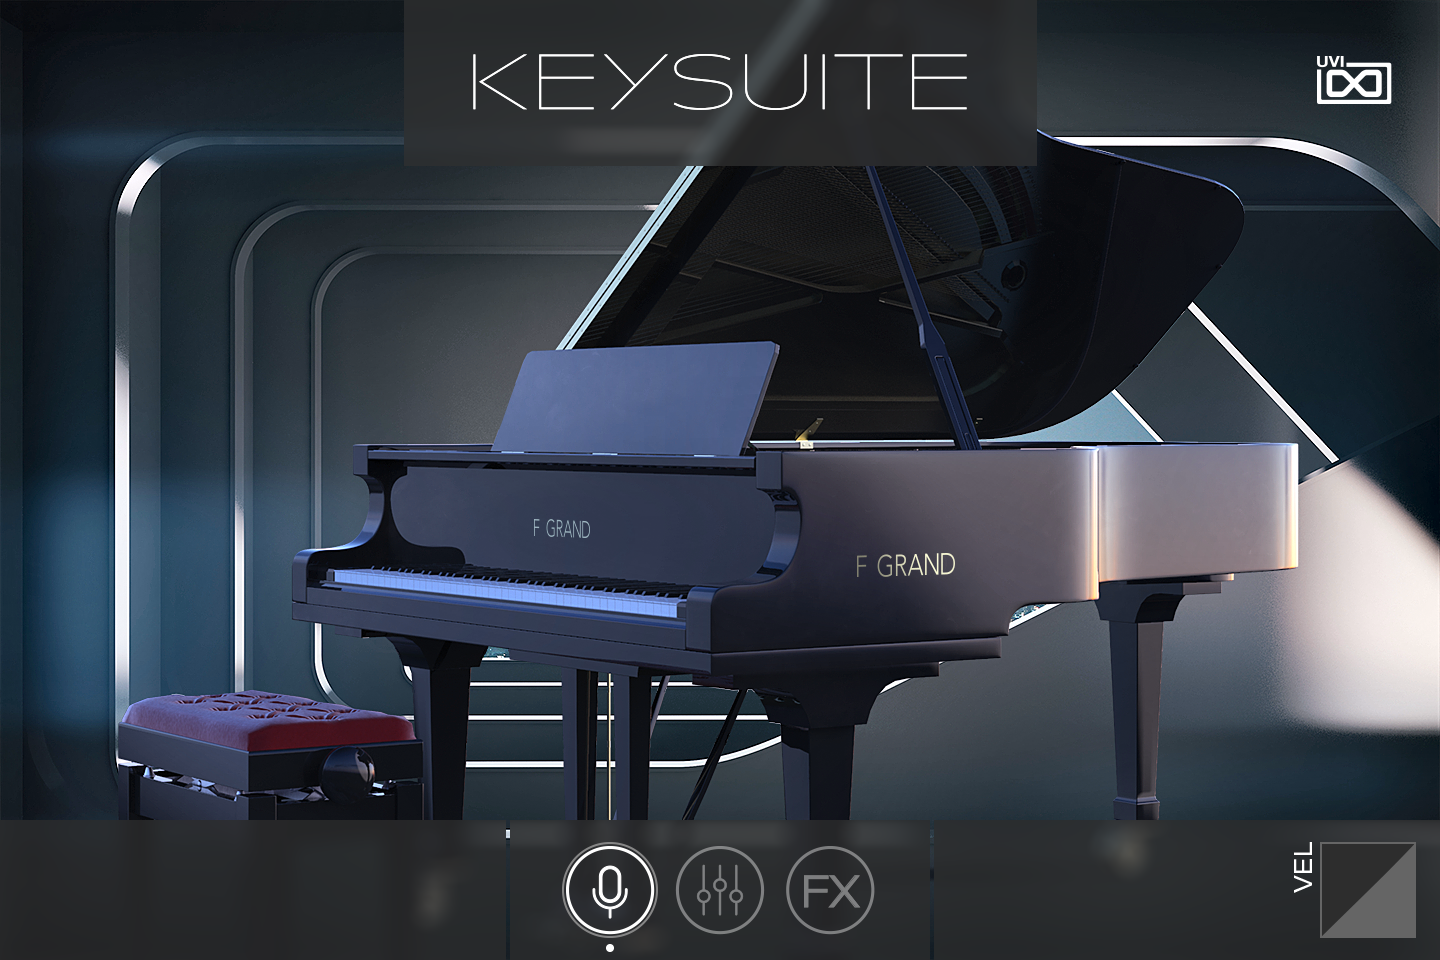 UVI Key Suite Acoustic | F Grand Main